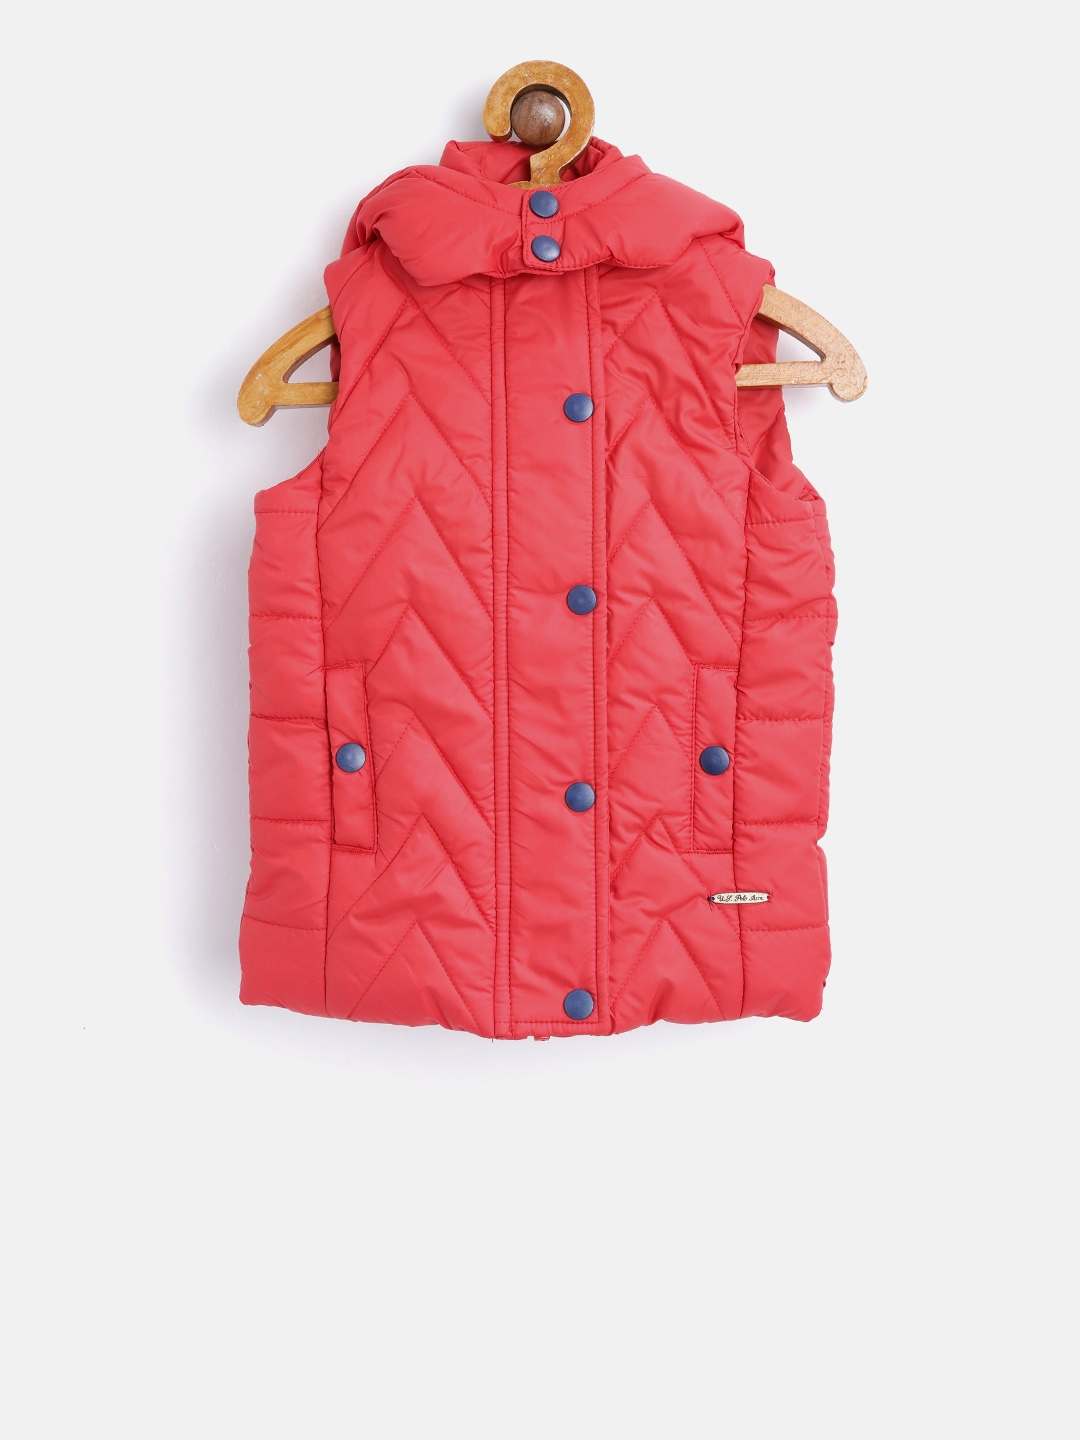 c03934ac699f Buy U.S. Polo Assn. Kids Girls Red Hooded Sleeveless Quilted Jacket ...